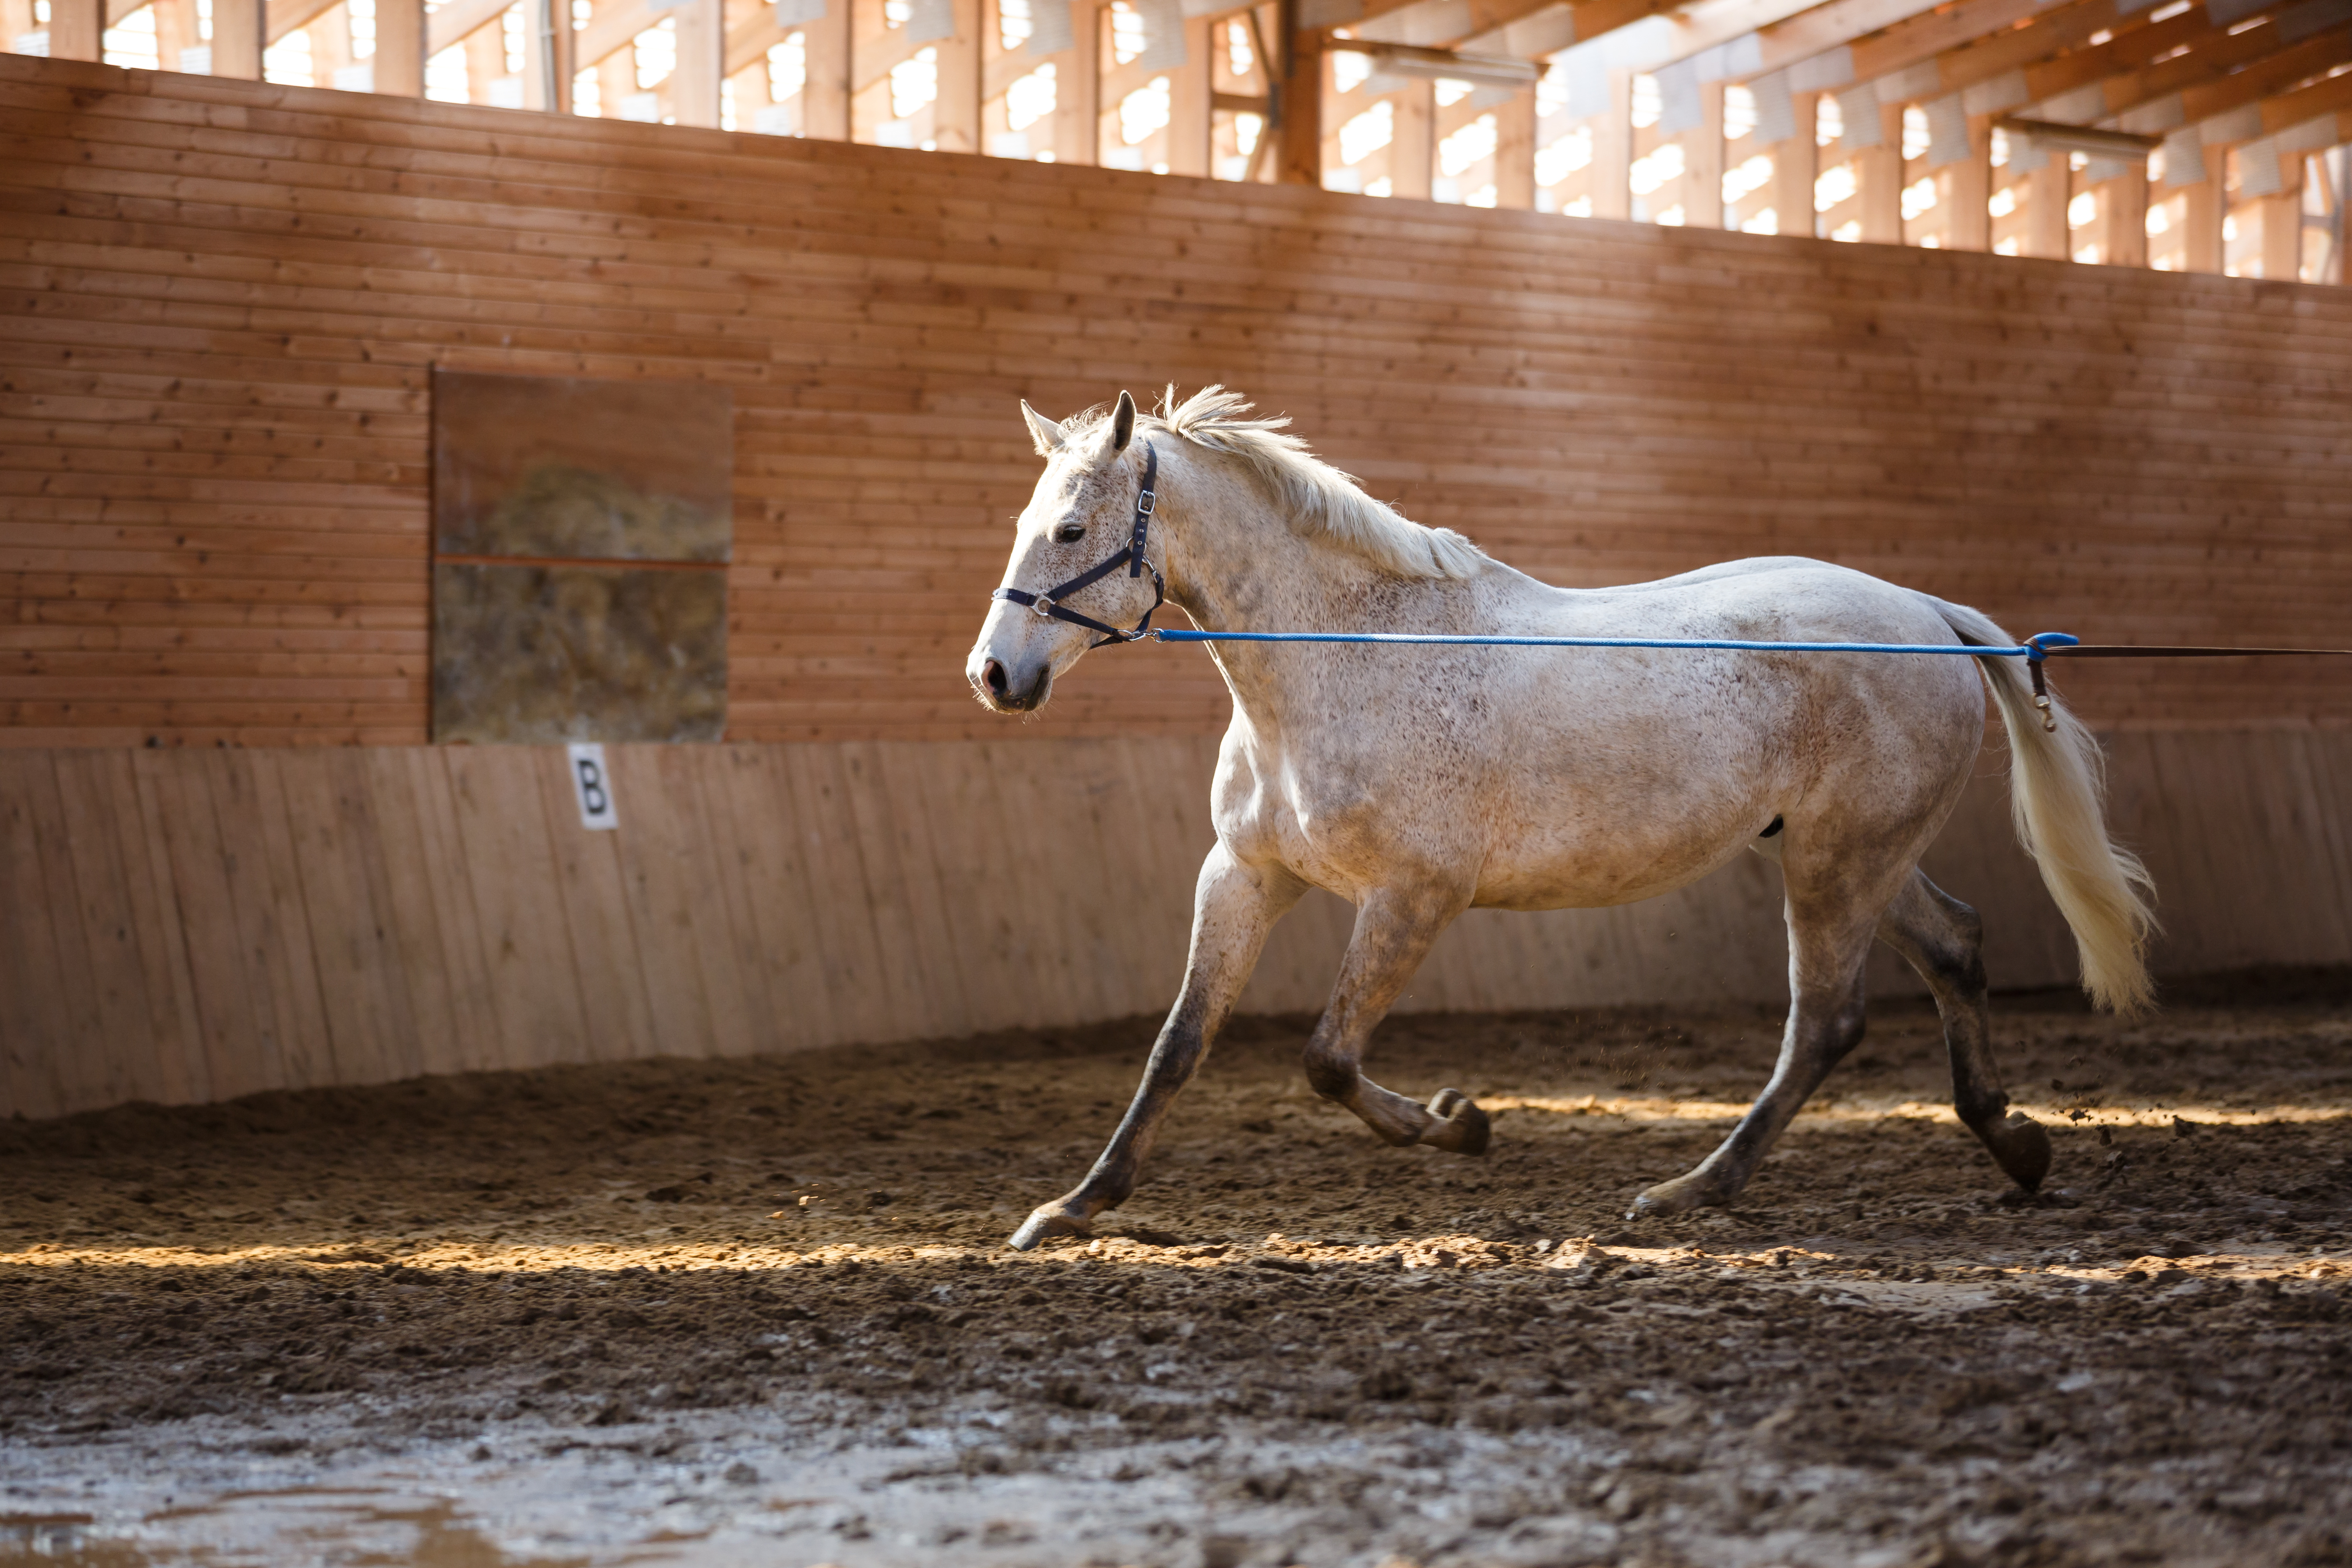 Horse being exercised